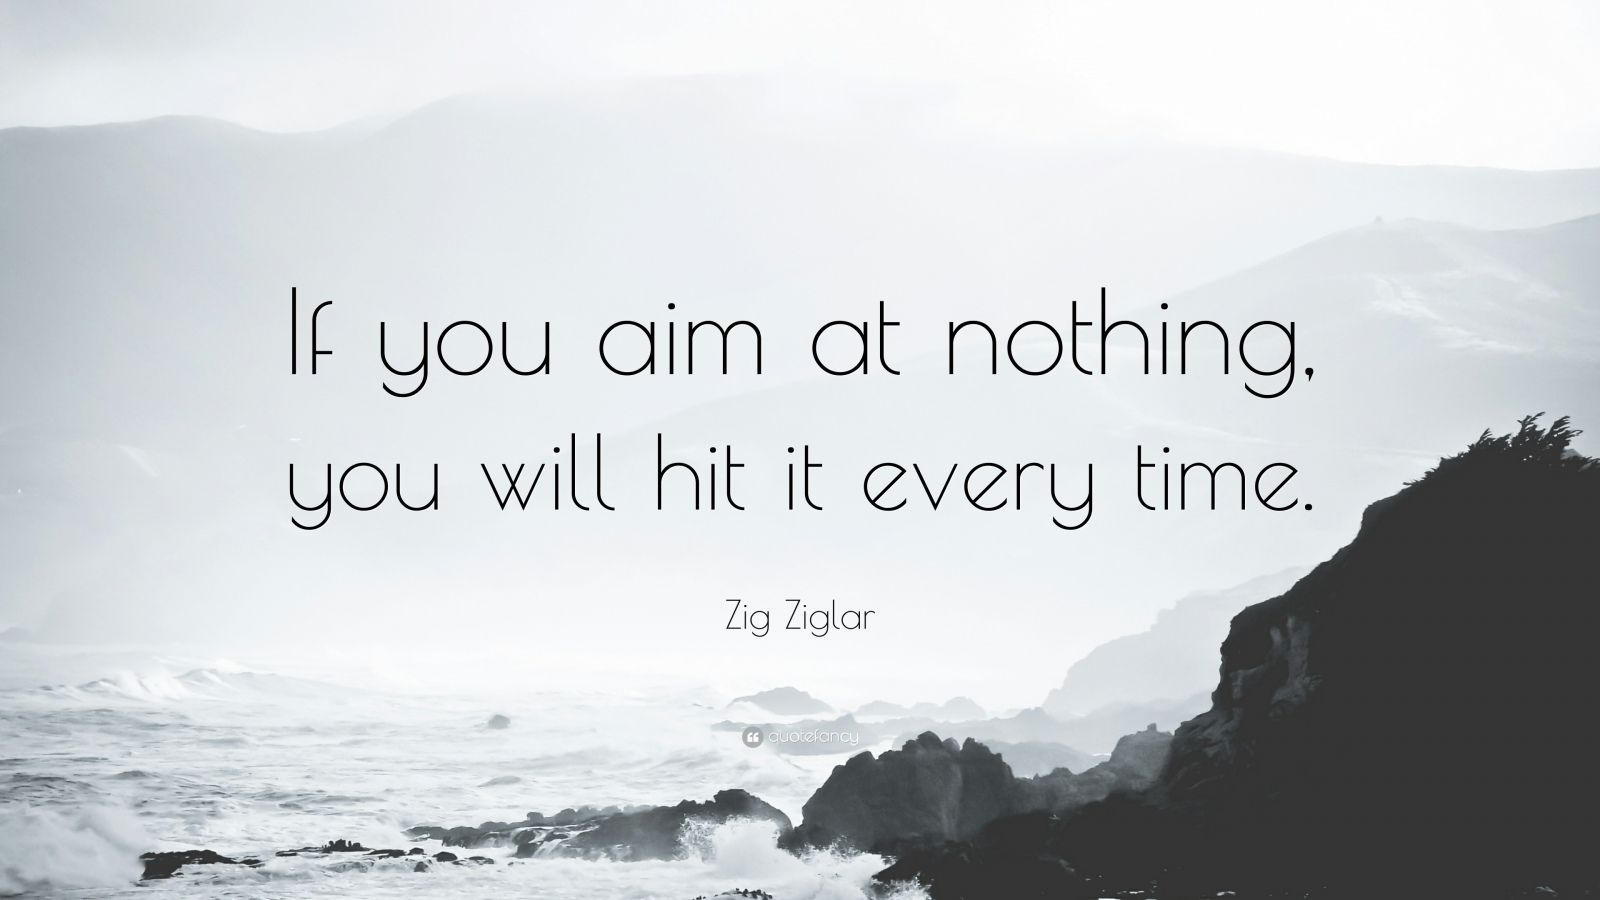 Quotes Zig Ziglar Alluring Zig Ziglar Quotes 100 Wallpapers  Quotefancy